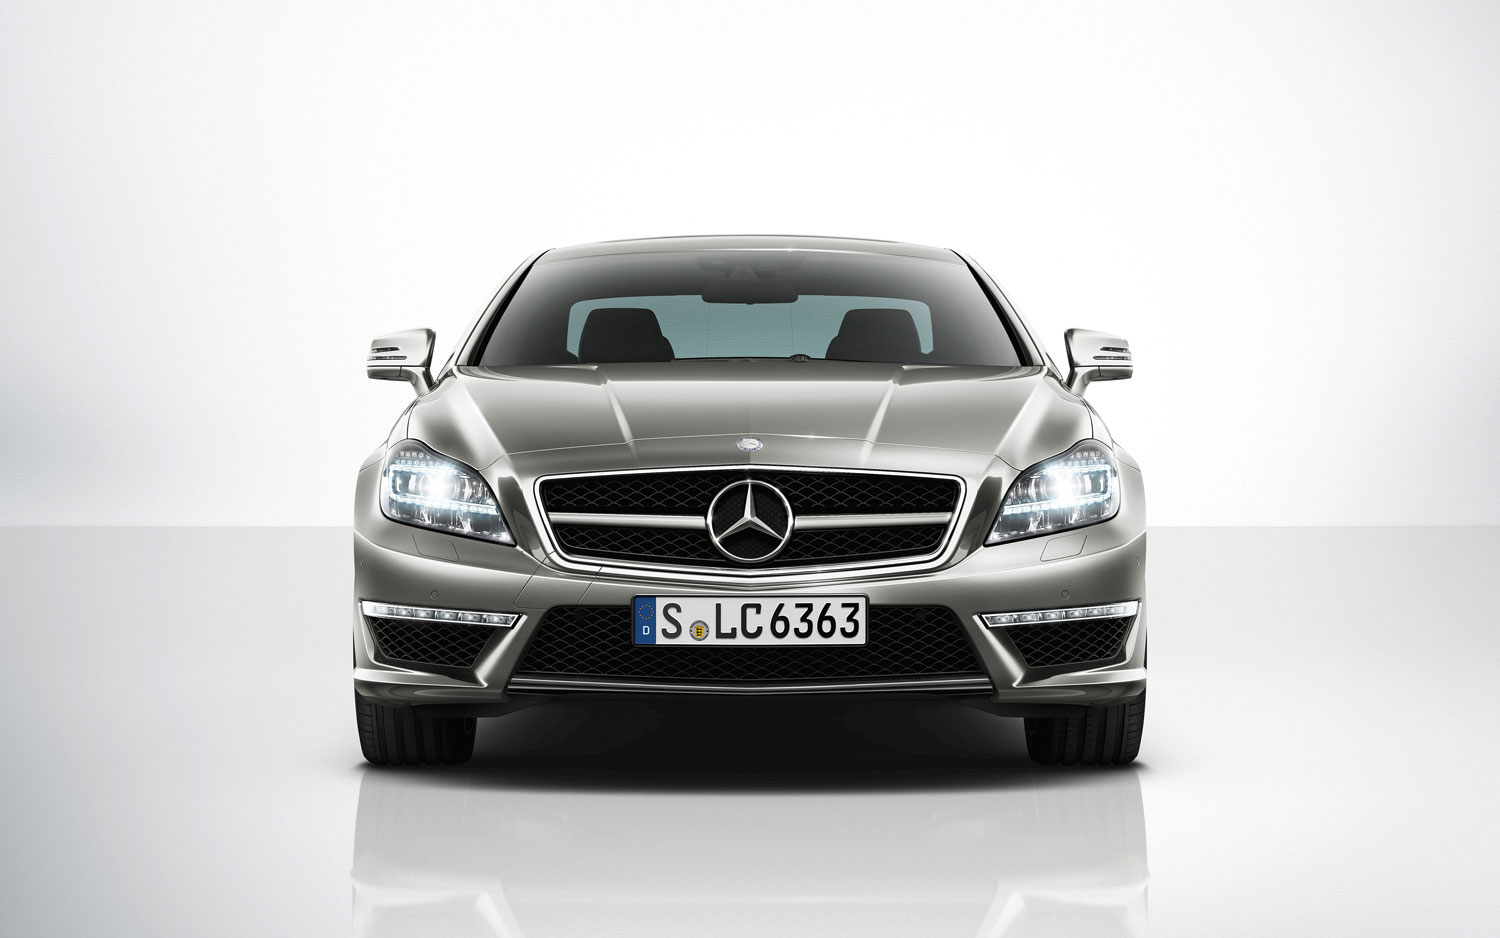 2012 mercedes benz cls550 first drive automobile magazine for Mercedes benz amg cls63